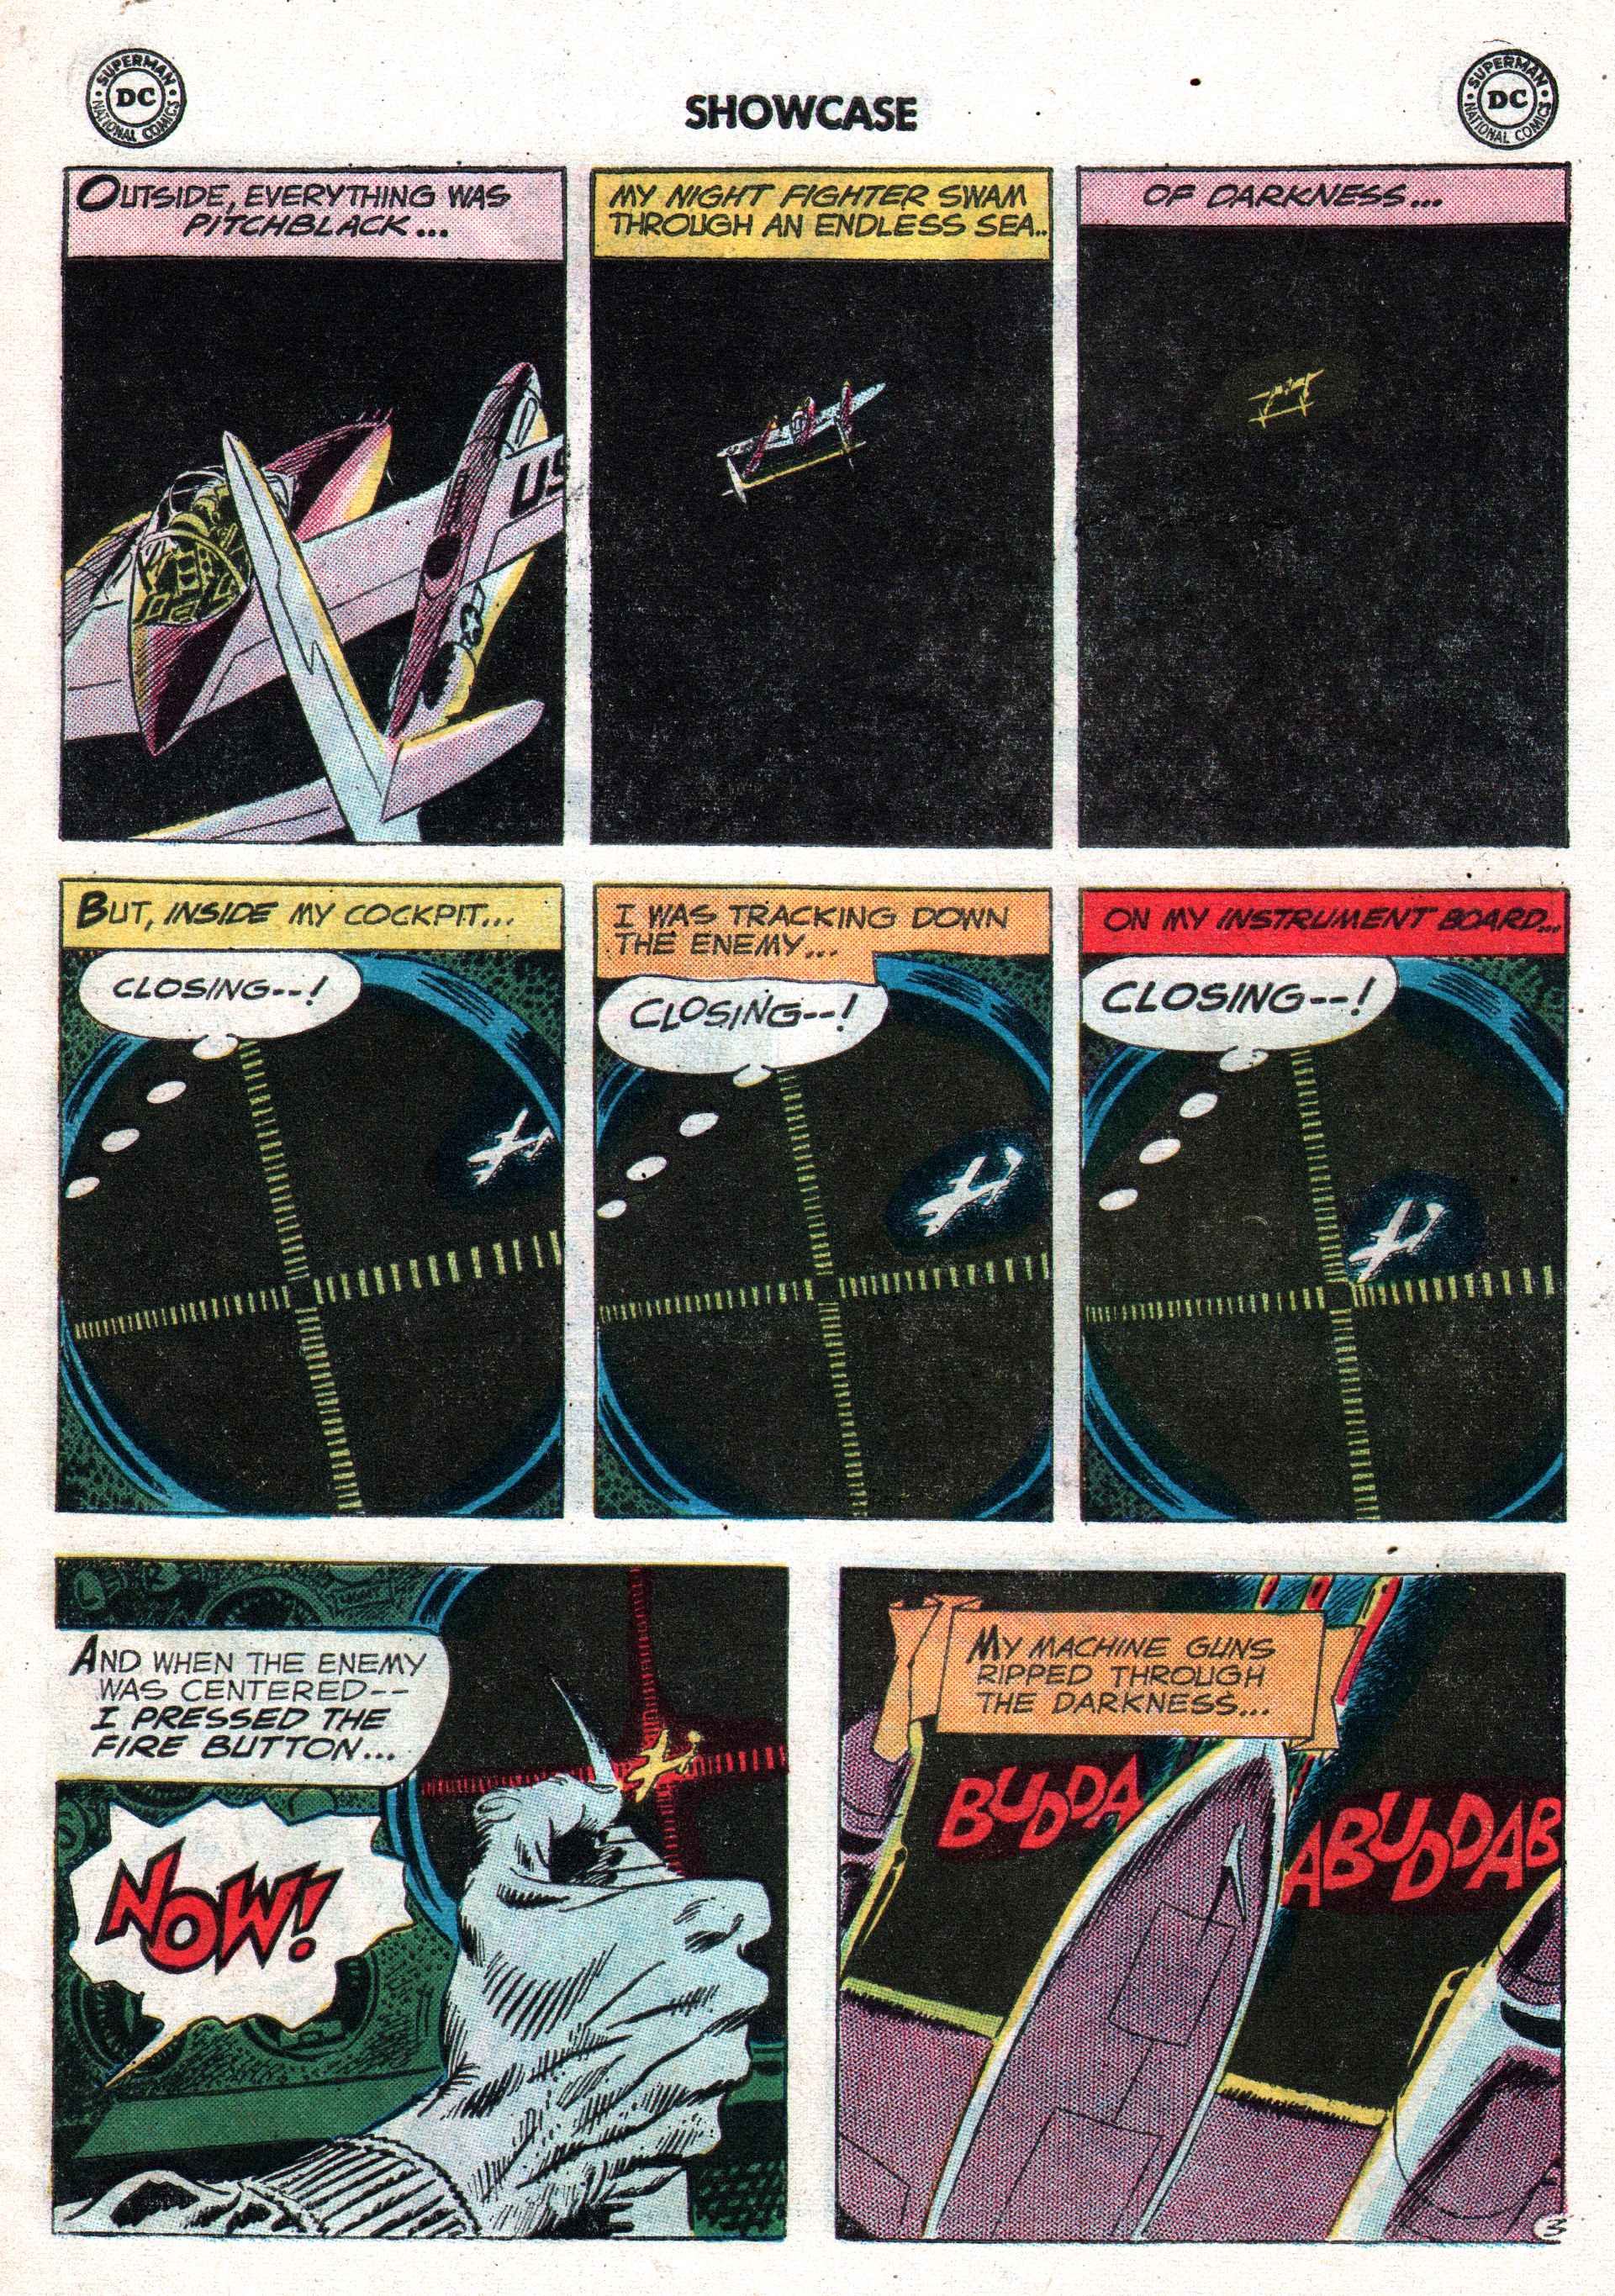 Read online Showcase comic -  Issue #54 - 7